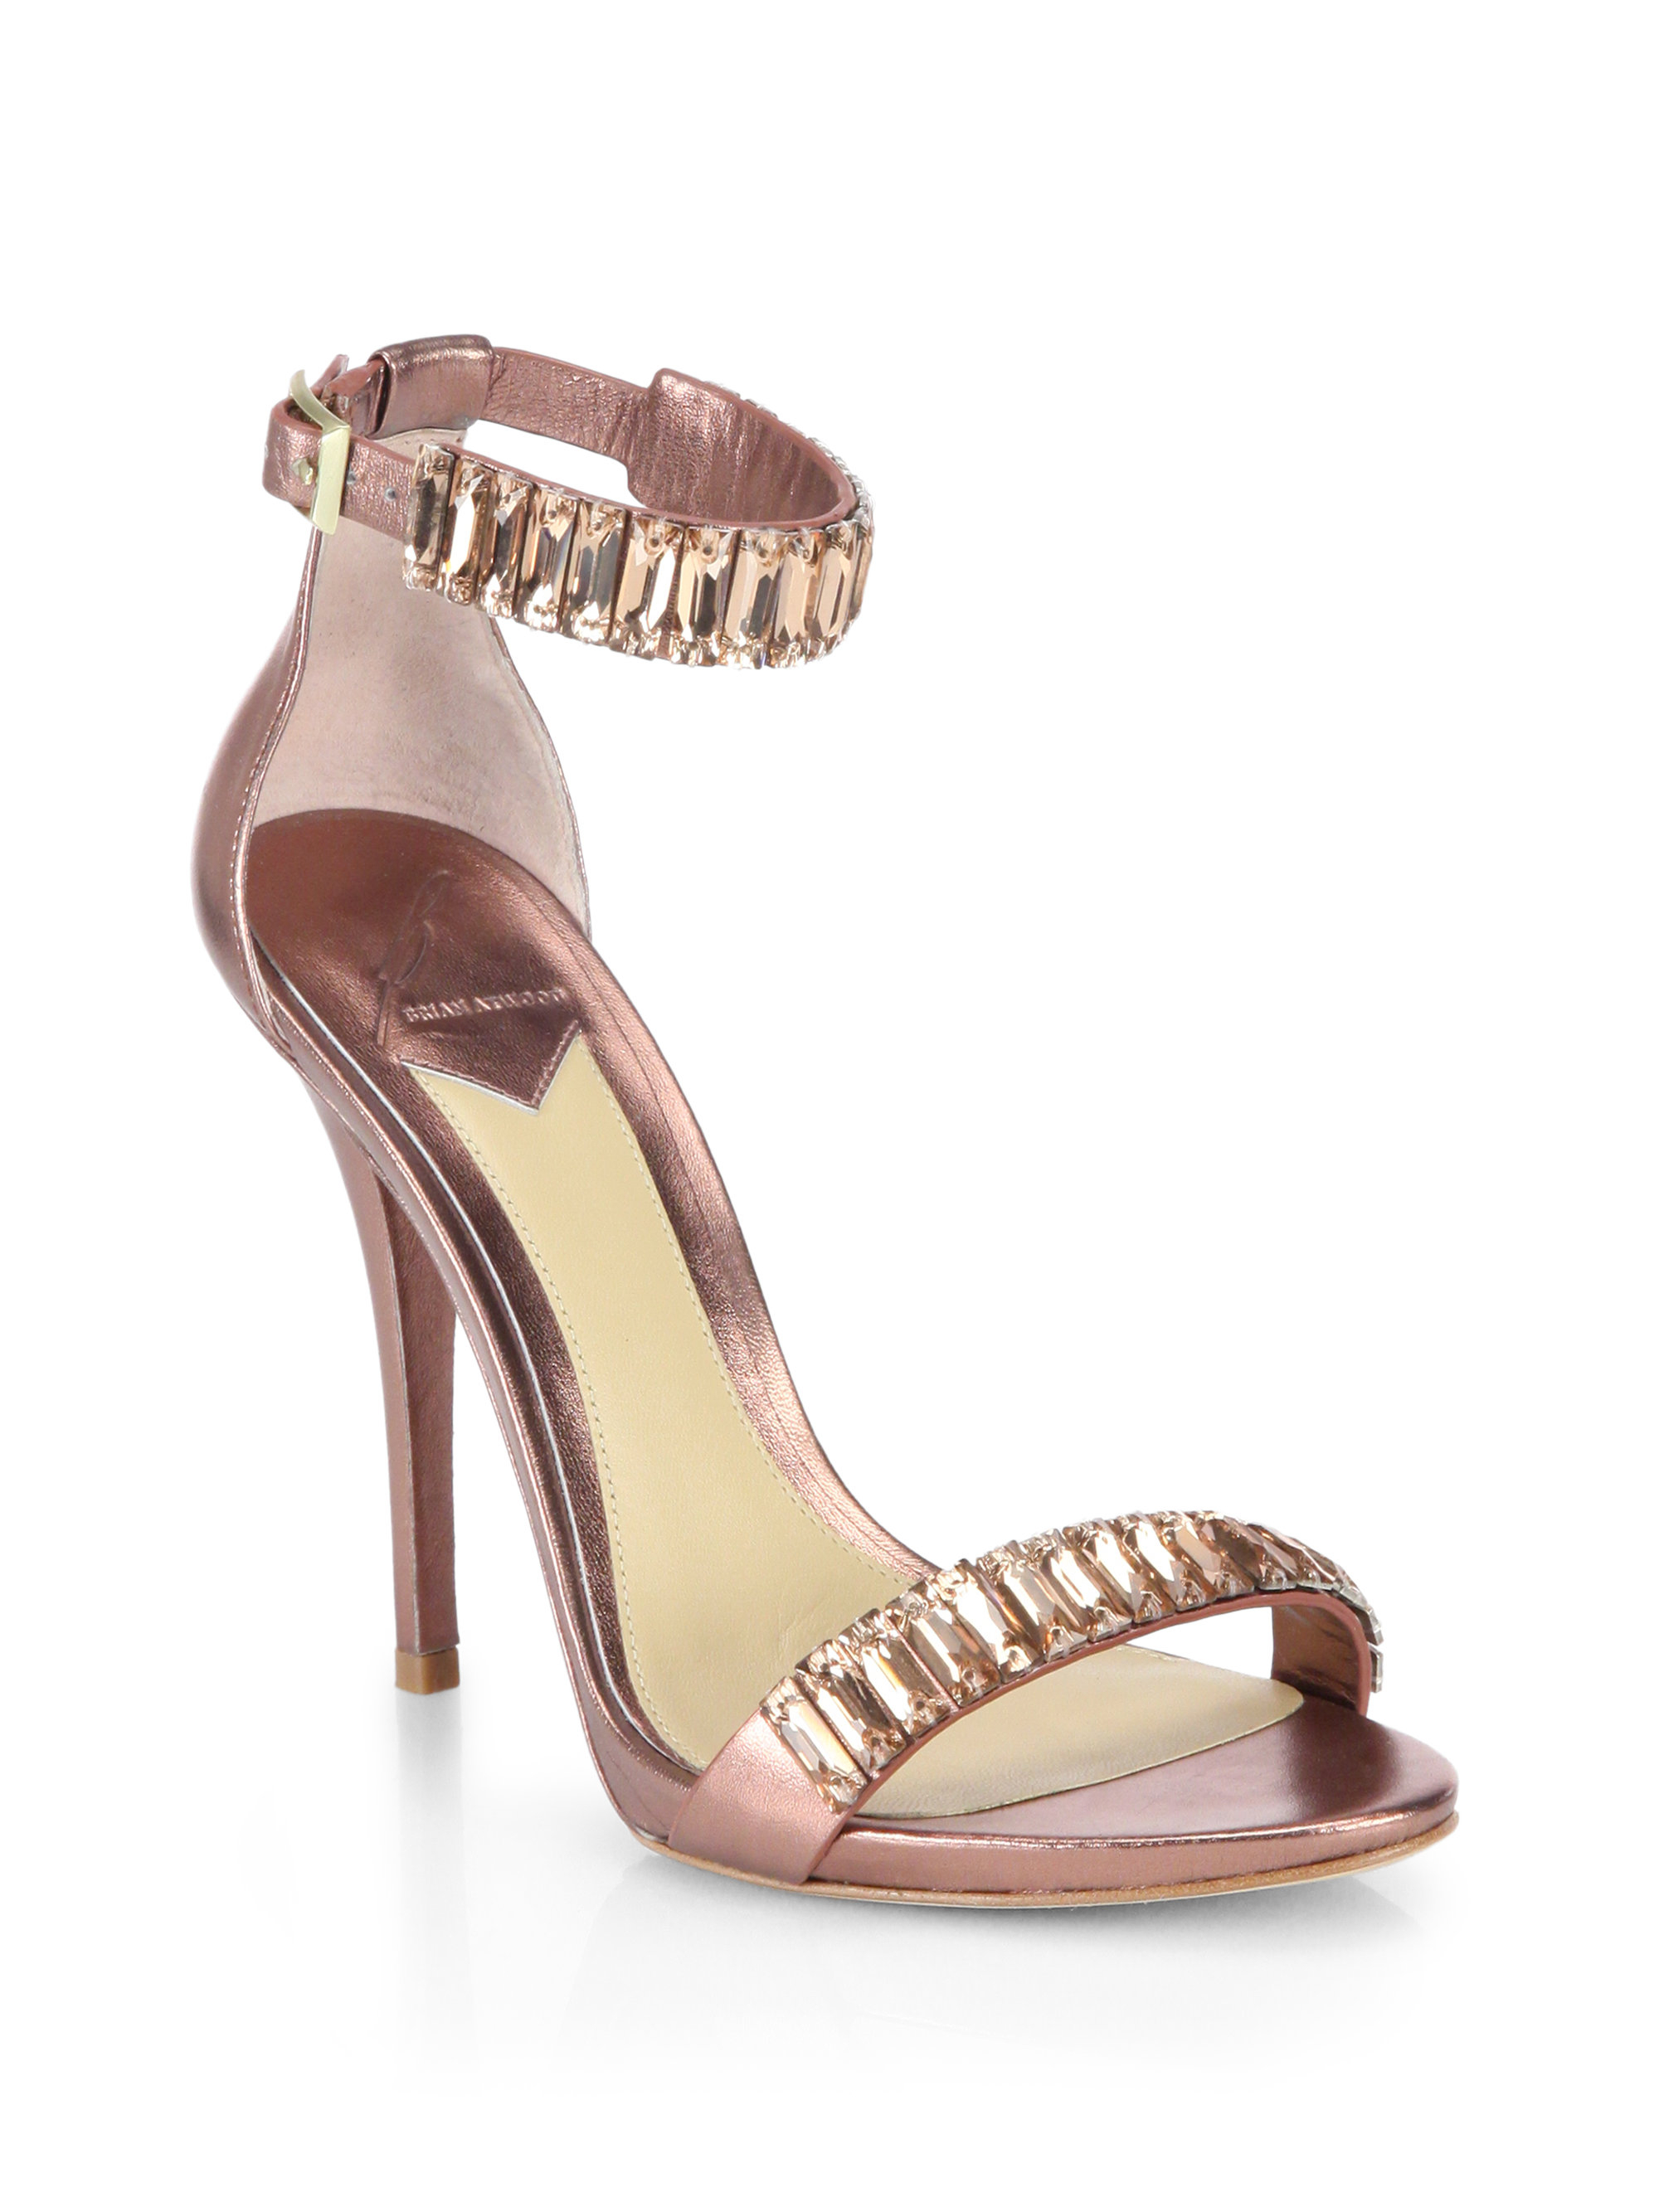 B Brian Atwood Metallic Embossed Sandals cheap sale genuine buy cheap for nice cheap sale 100% guaranteed buy cheap latest 4vnR11afP